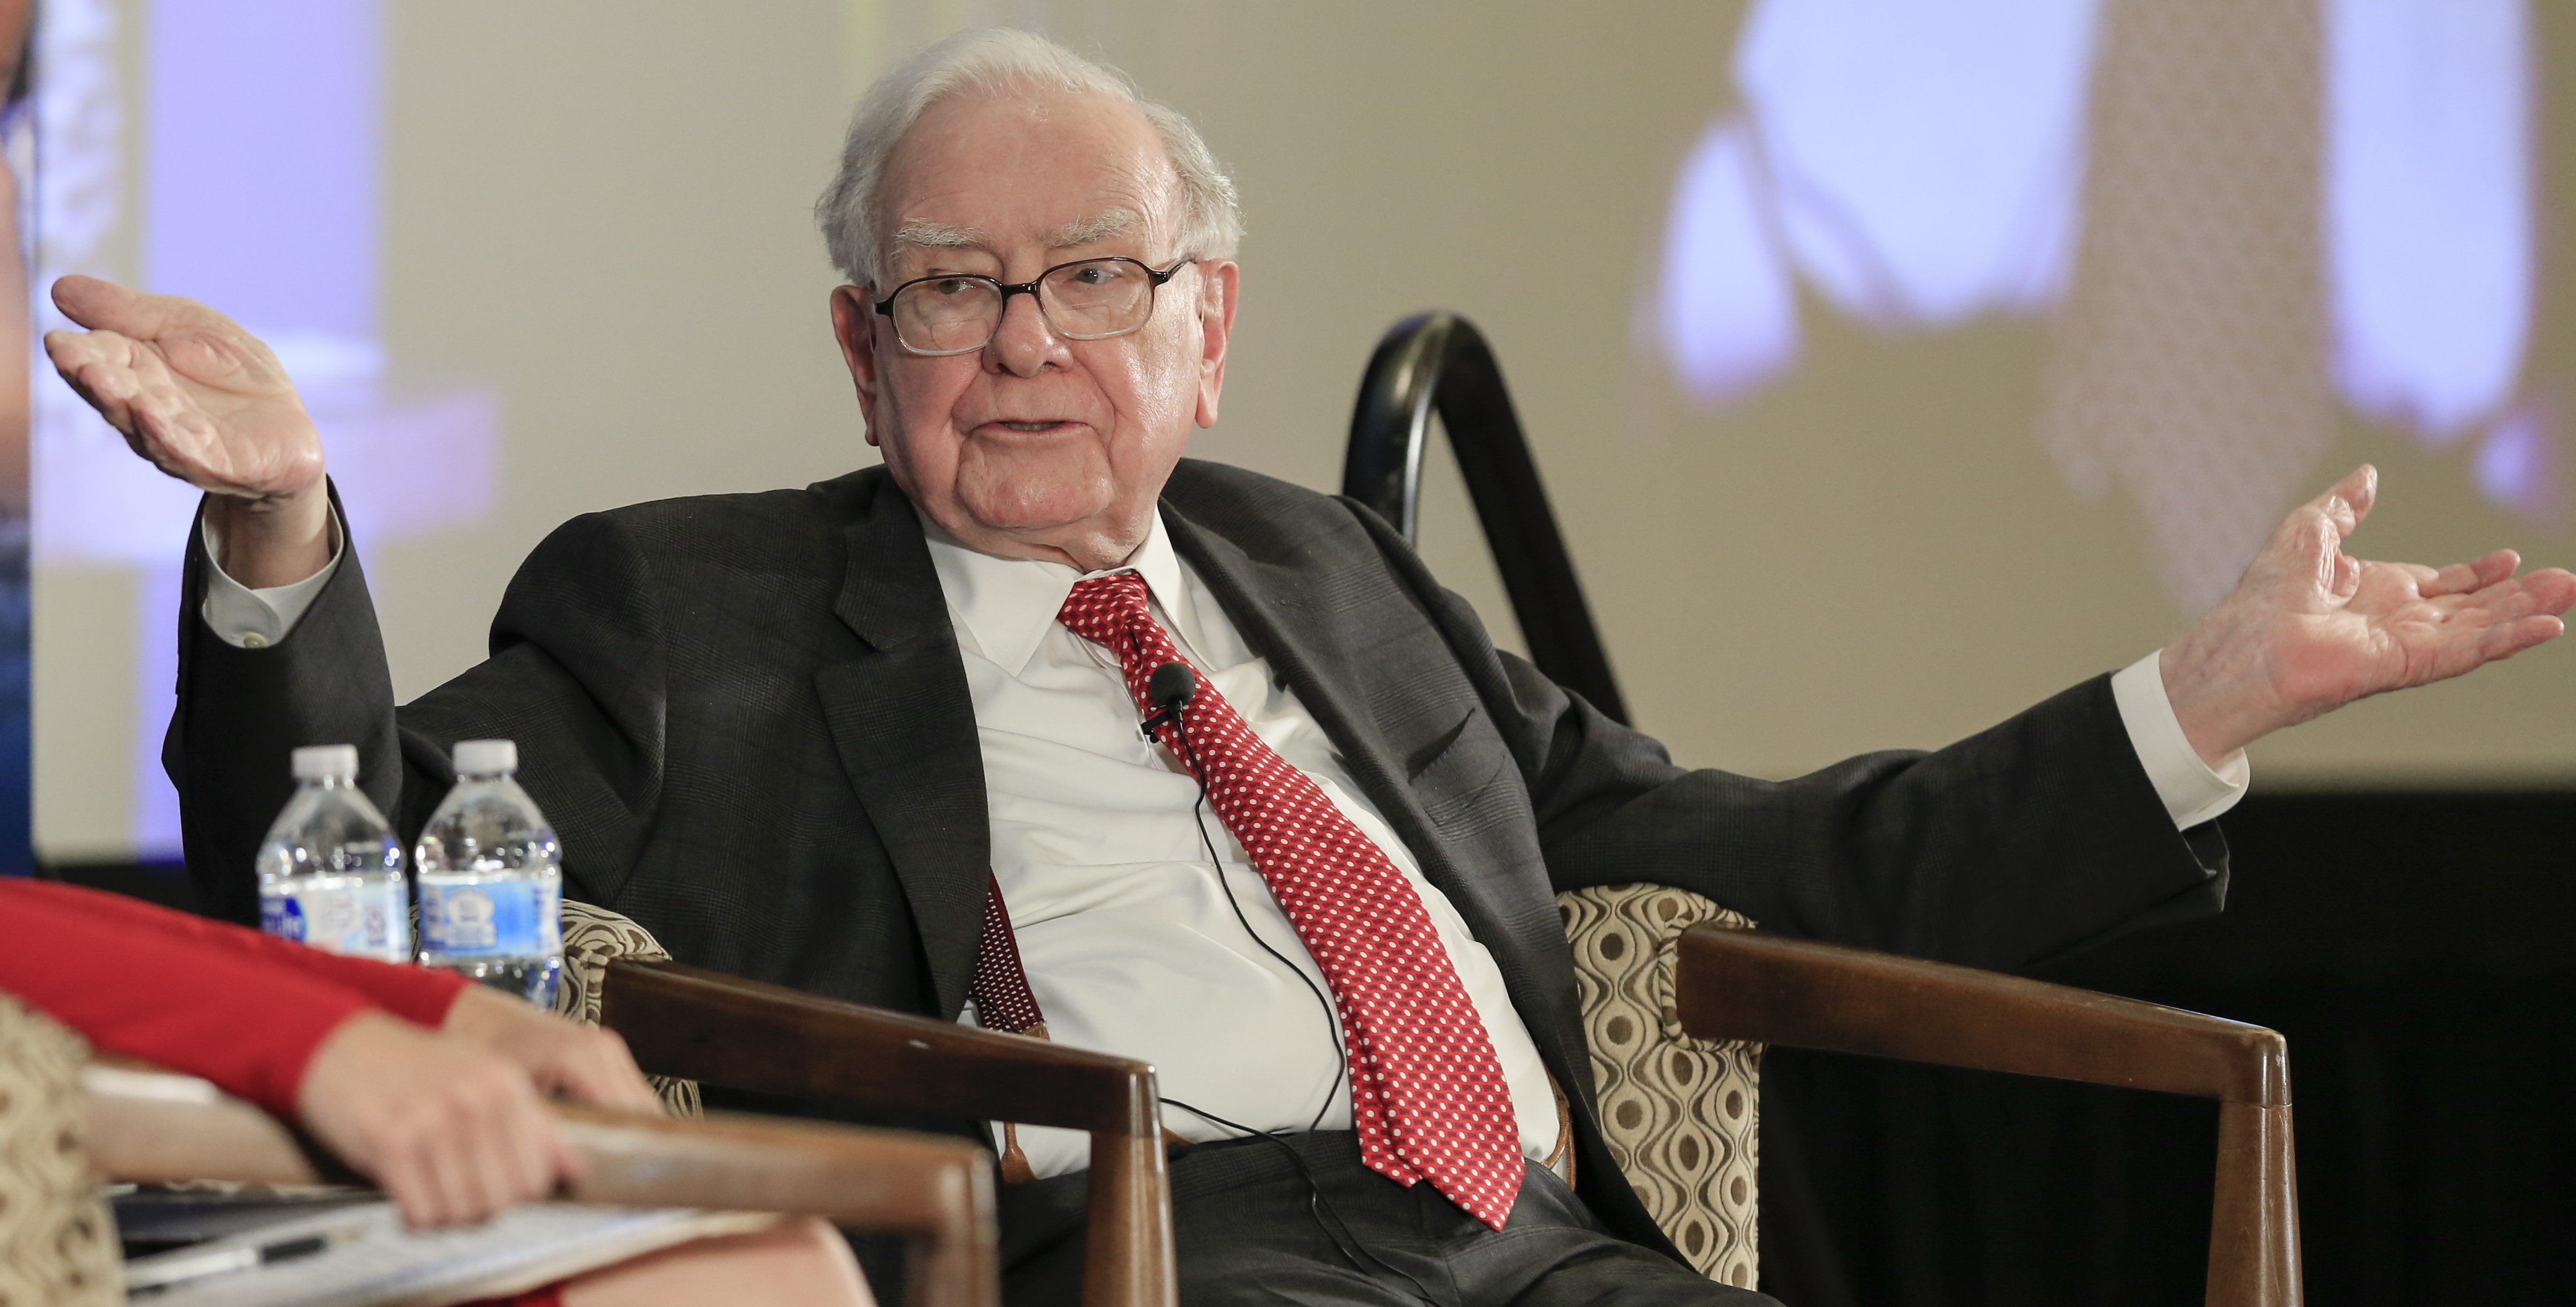 Investor Warren Buffett gestures on stage during a conversation with CNBC's Becky Quick, at a national conference sponsored by the Purpose Built Communities group that Buffett supports, in Omaha, Neb., Tuesday, Oct. 3, 2017, Buffett discussed what philanthropy can do to help fight poverty. (AP Photo/Nati Harnik)